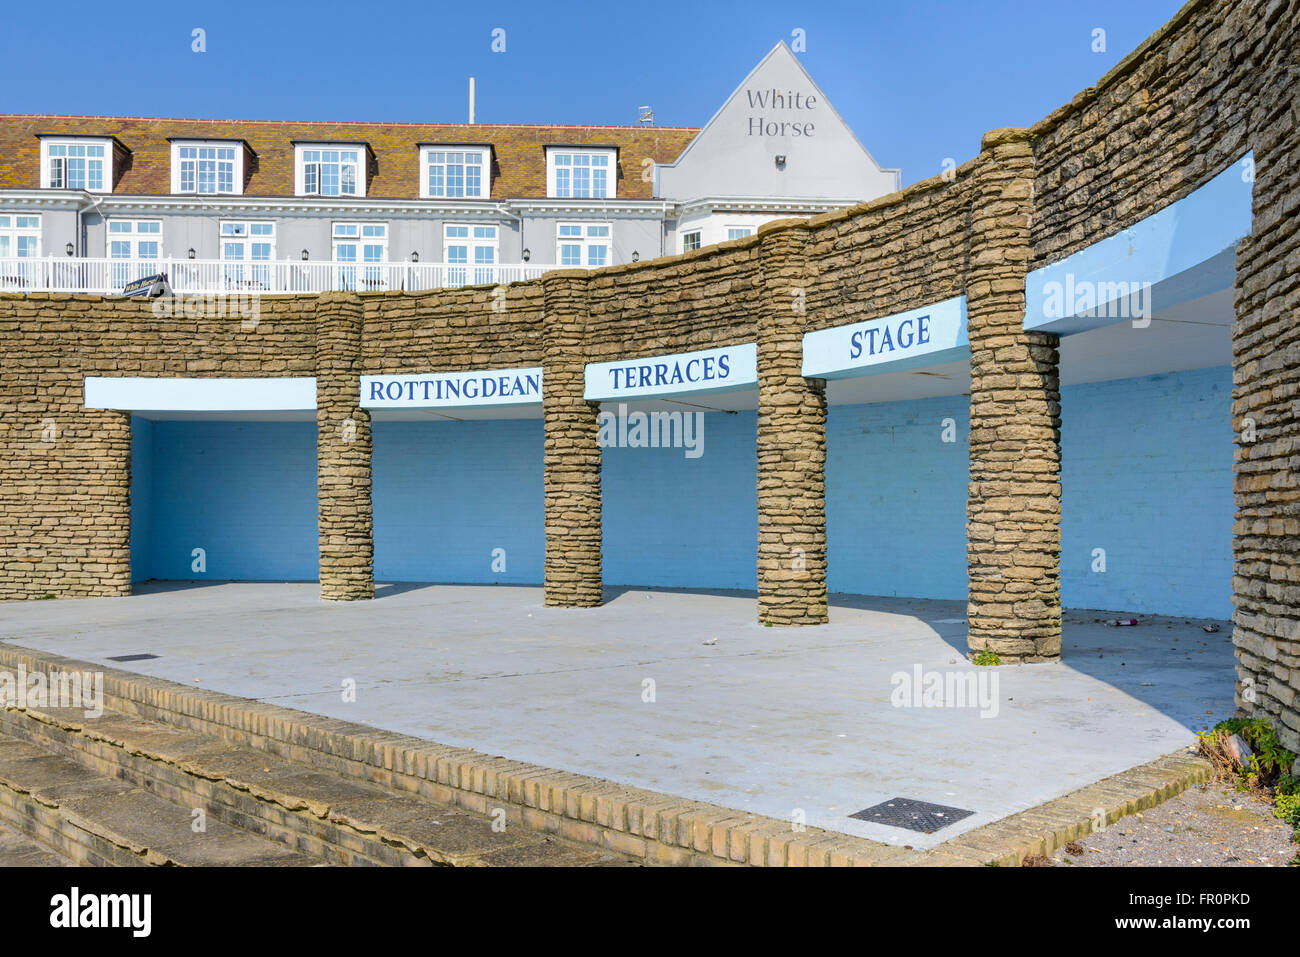 Rottingdean Terraces Stage in Rottingdean, East Sussex, England, UK. - Stock Image